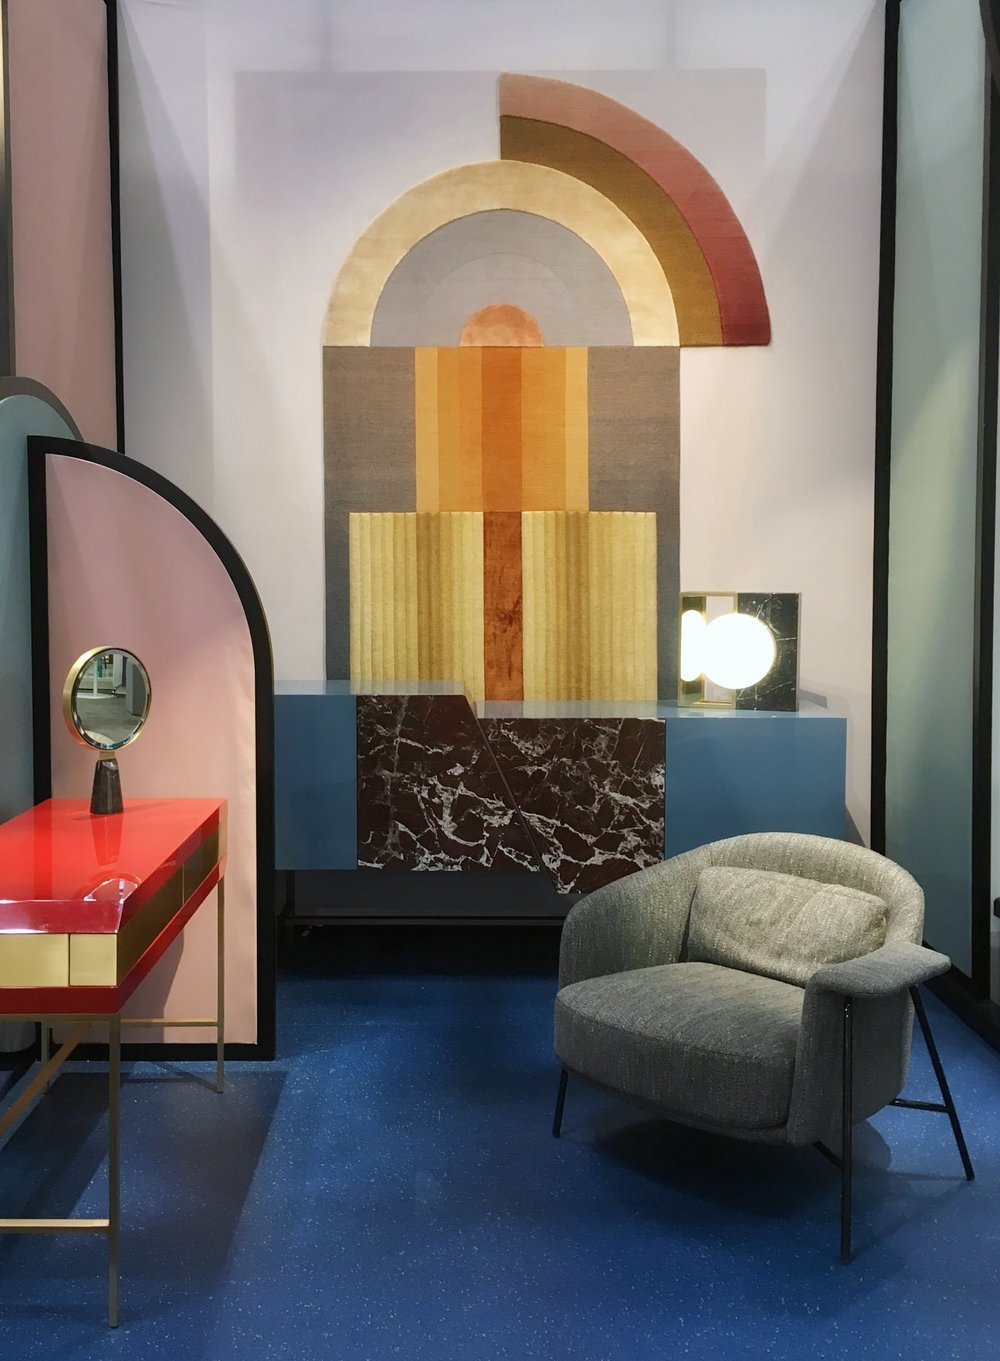 Photo 1 of 3 of the shared booths by  3x3x3  , ICFF, New York 2018